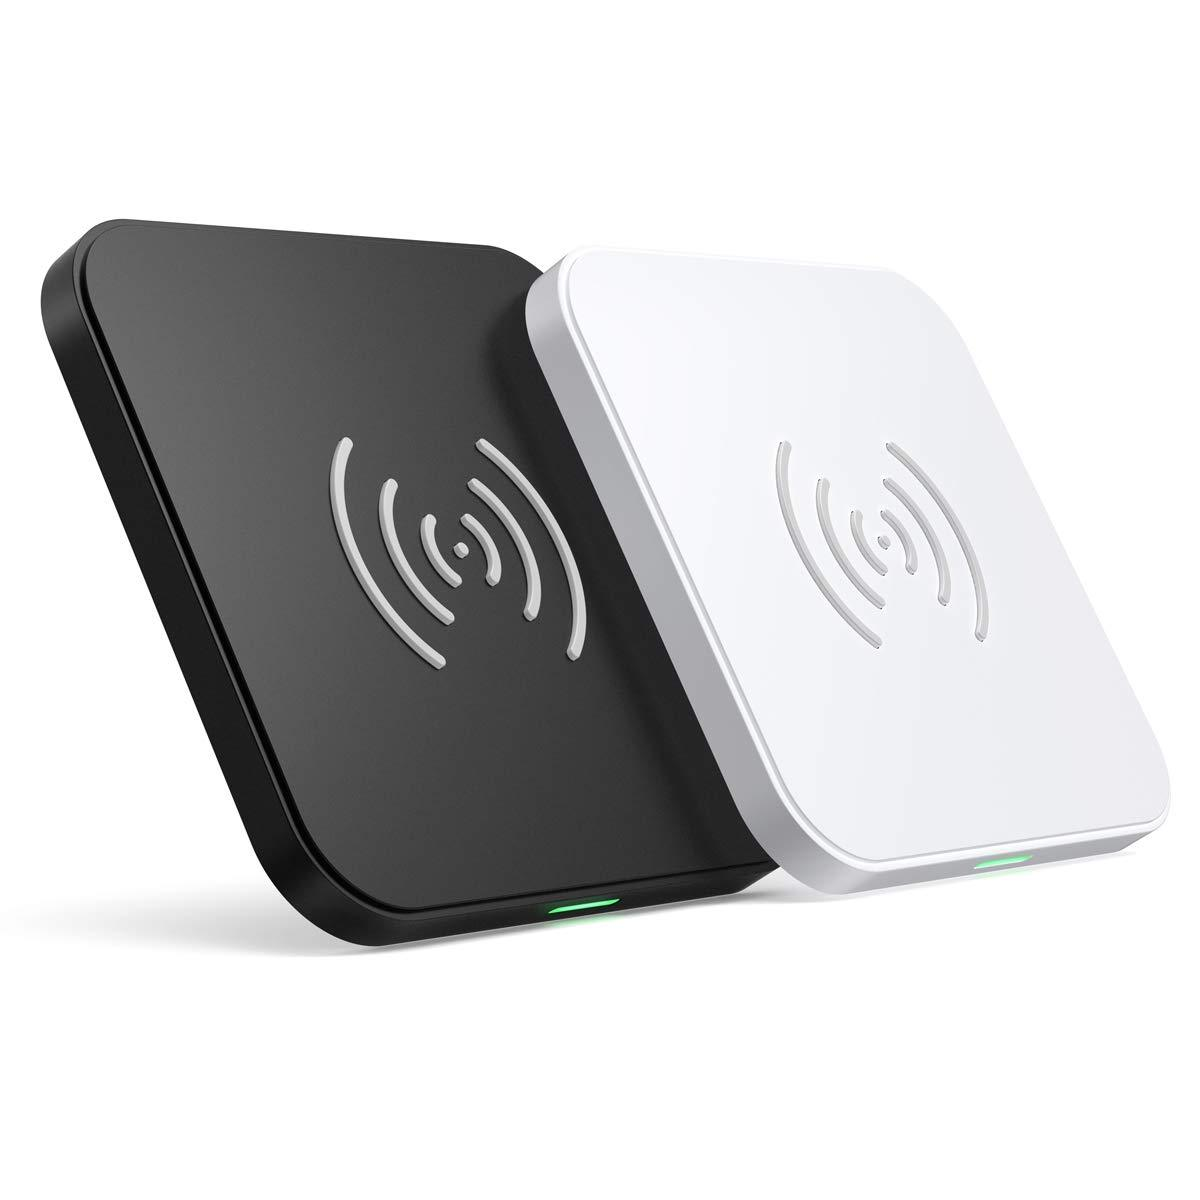 T511BW CHOETECH Qi-Certified Fast Wireless Charging Pad Black and White 2 Pack